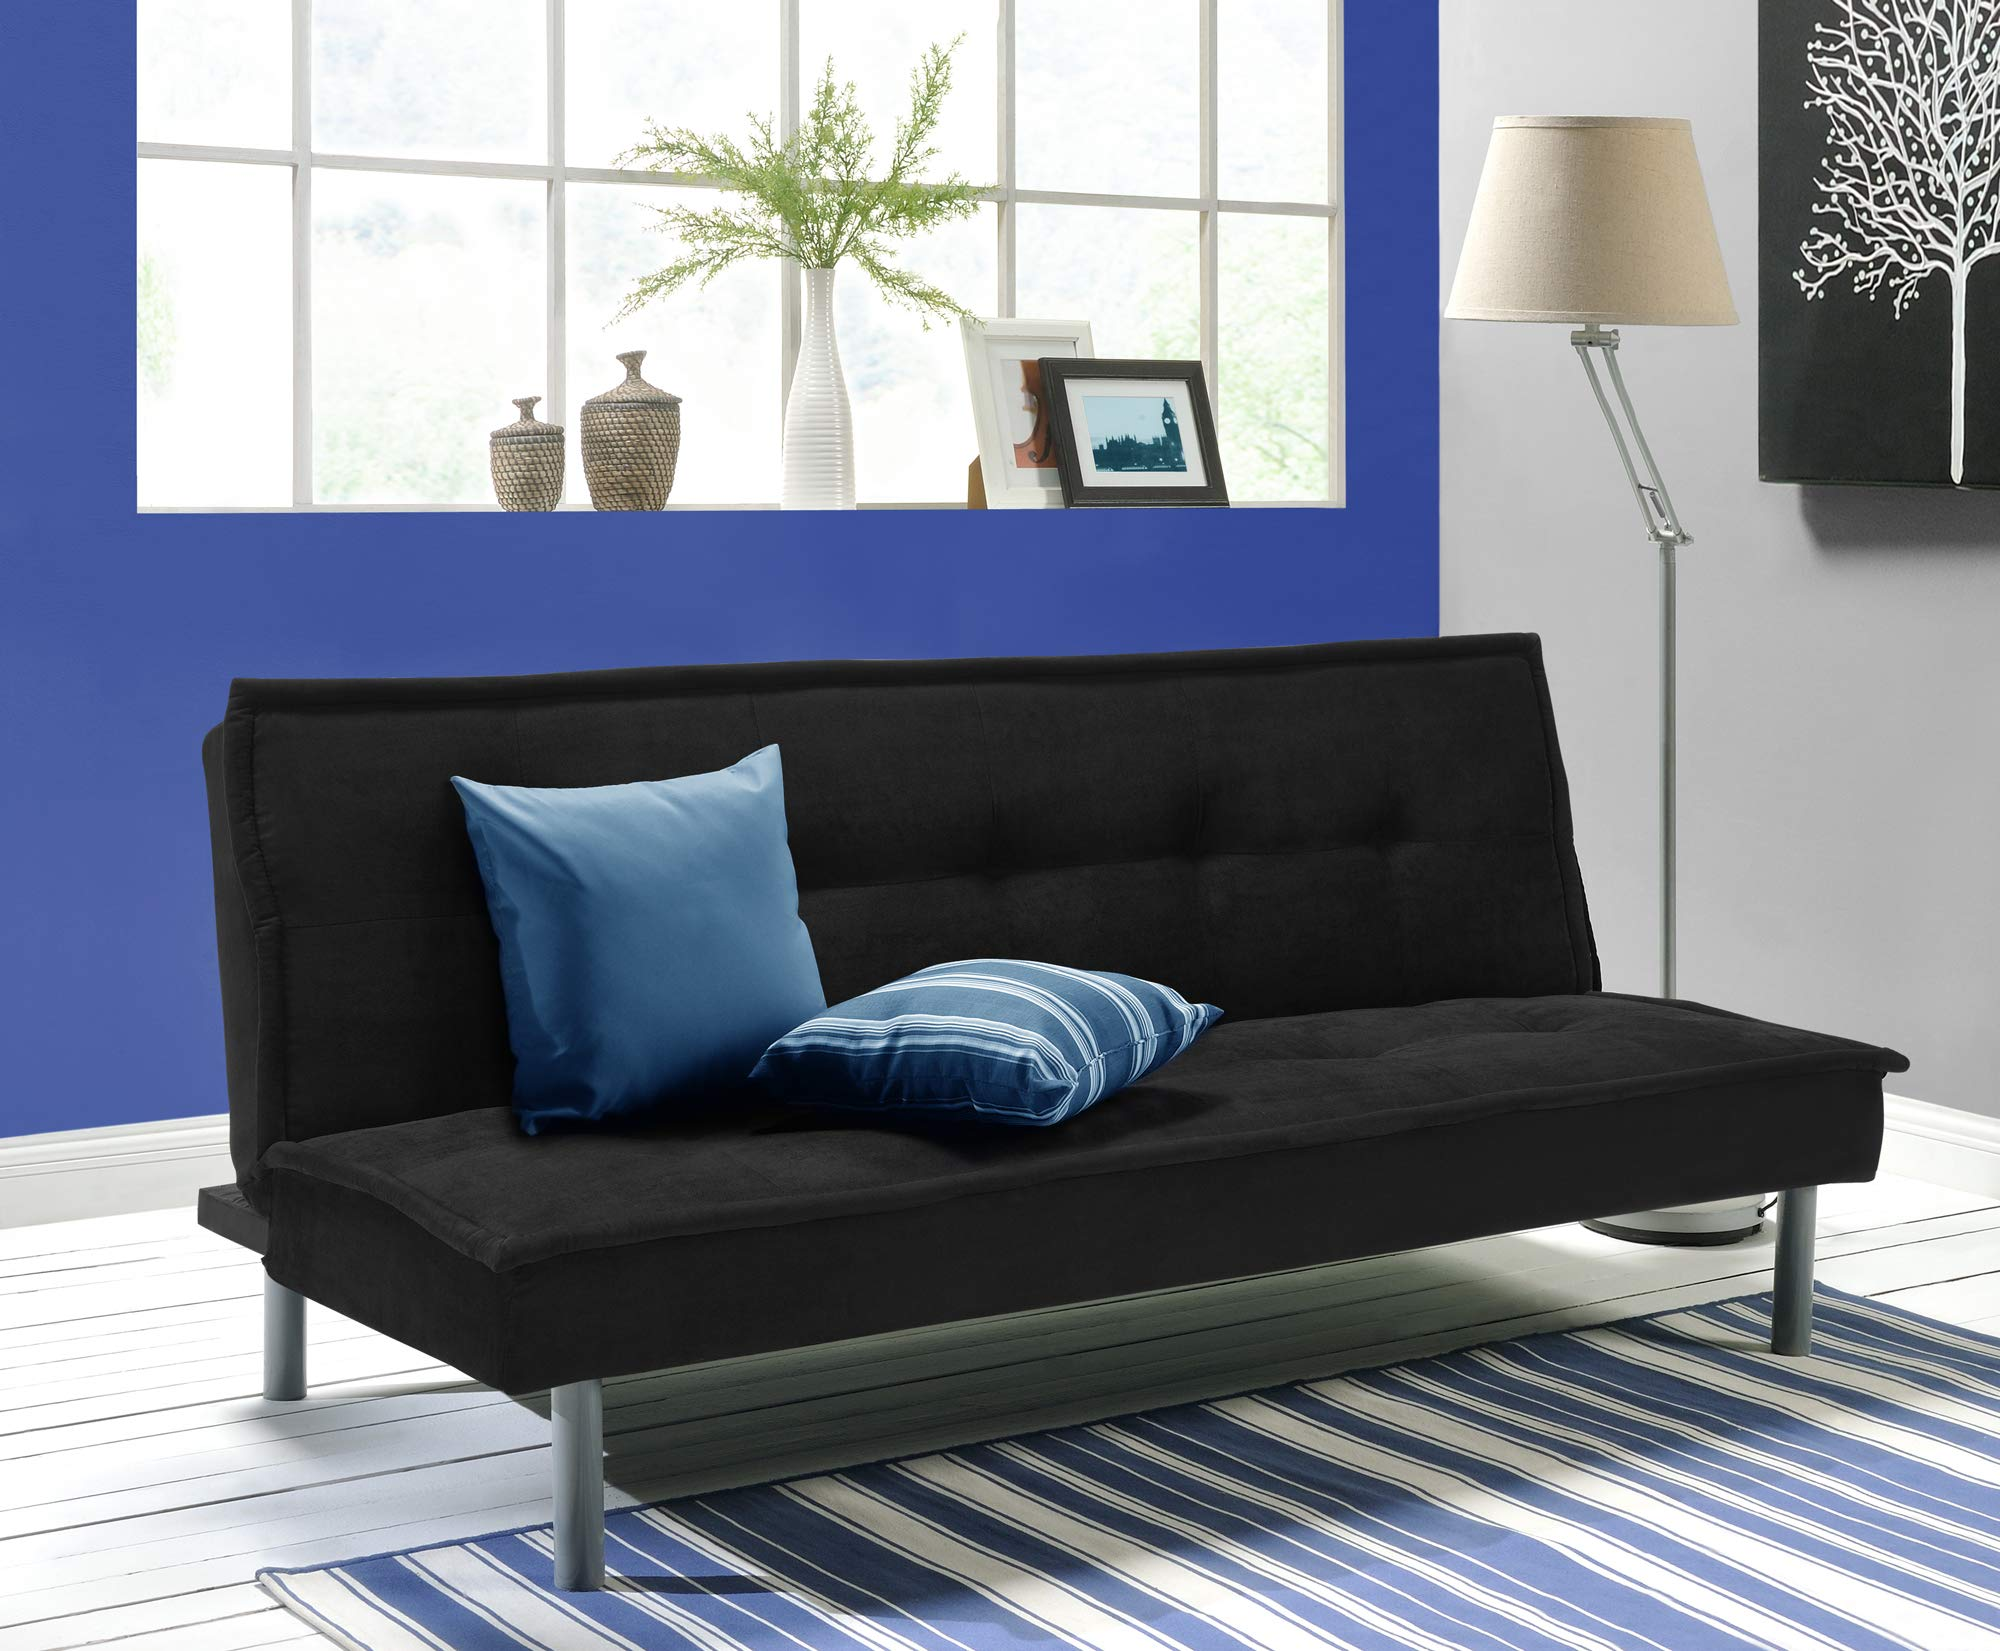 DHP Kent Convertible Microfiber Couch Bed with Sturdy Metal Legs, 600 lbs, Small - Black by DHP